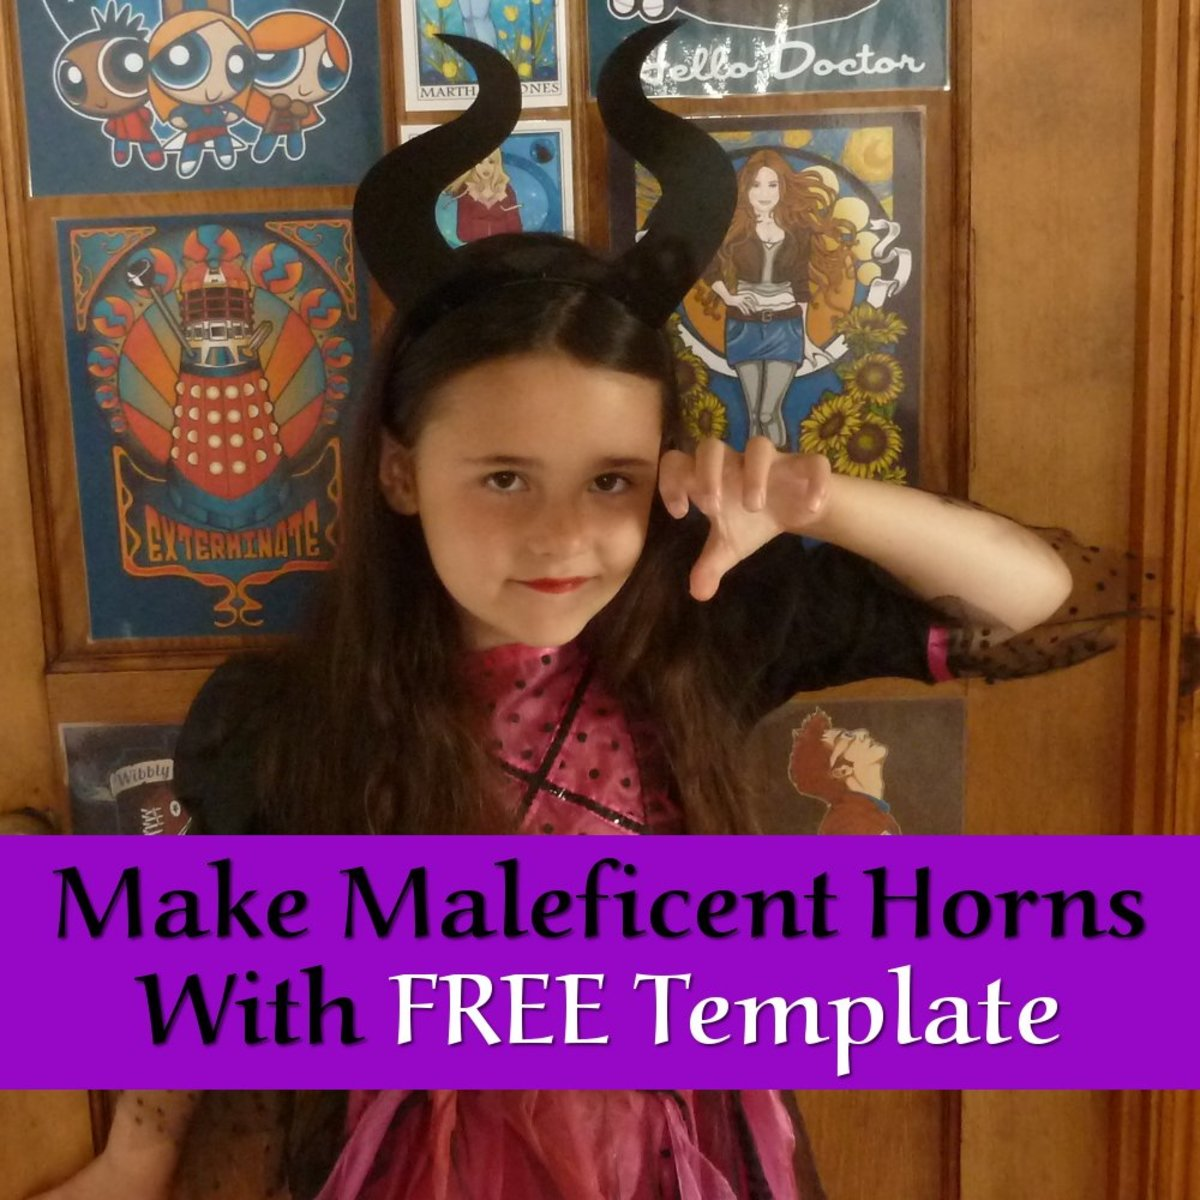 Make some easy and quick DIY Maleficent horns headband with a FREE Template design to use